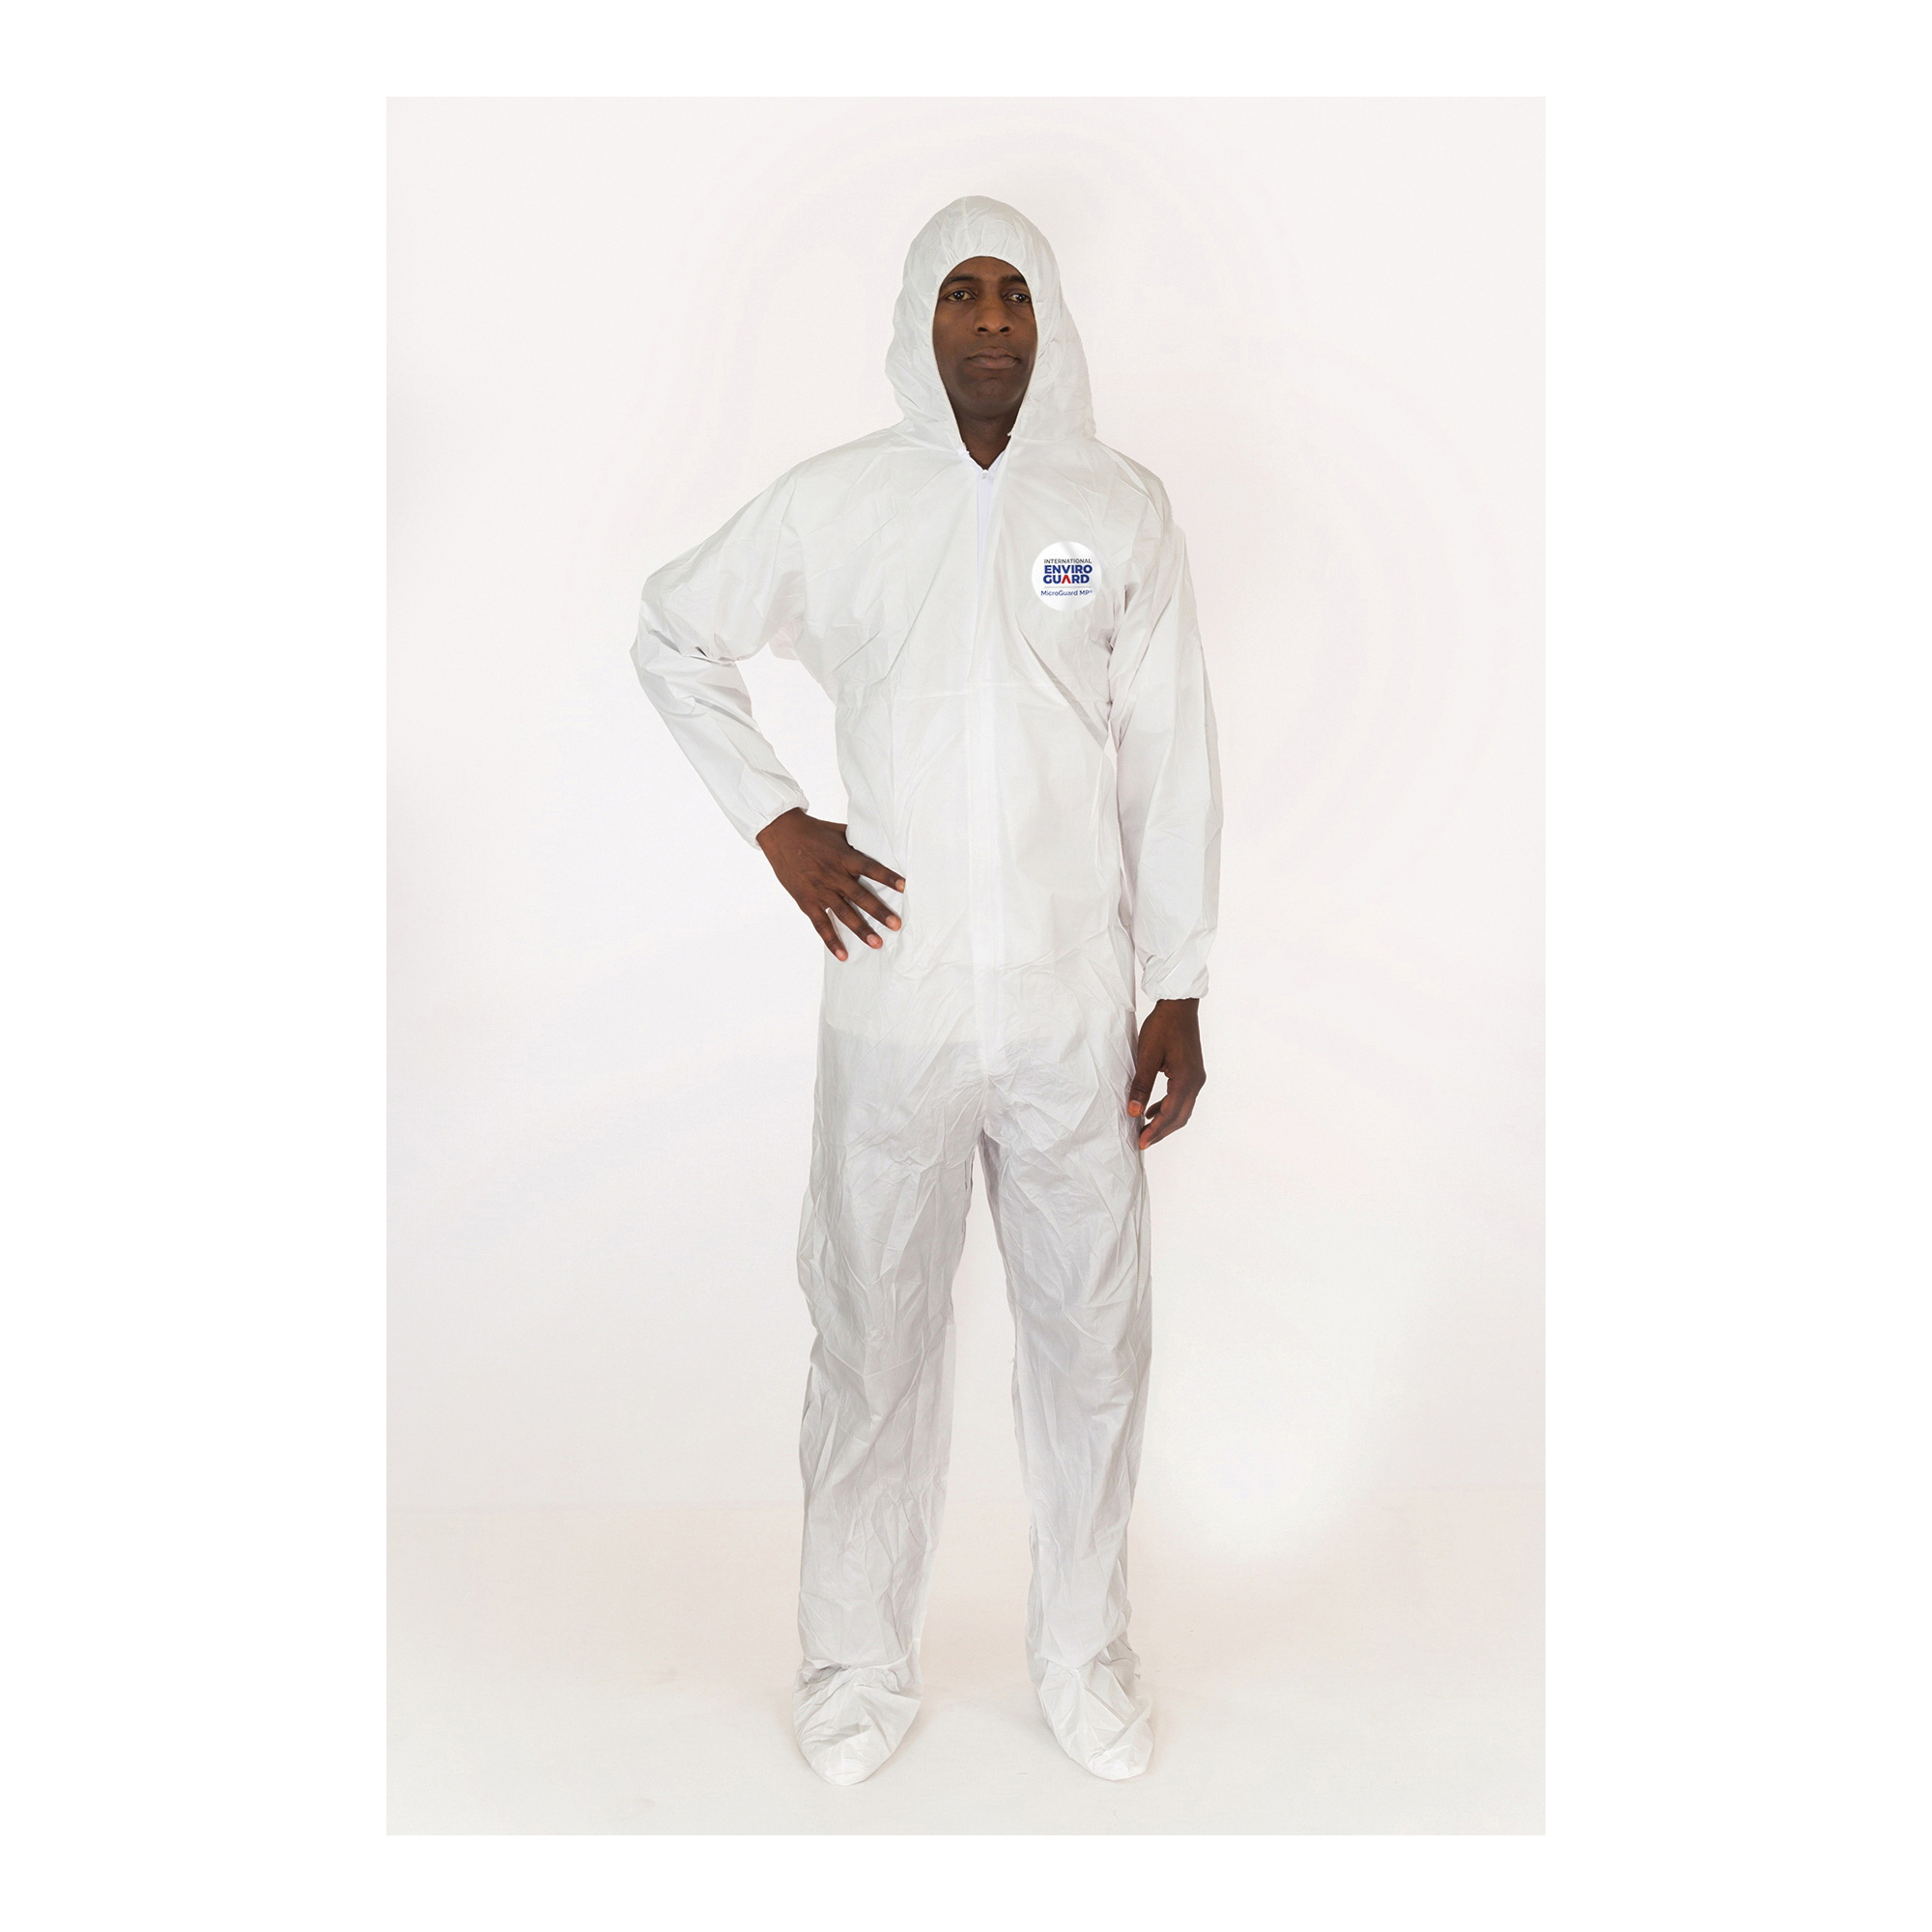 MicroGuard MP® 8019-L Breathable Disposable Coverall With Attached Hood and Boots, Elastic Wrist and Elastic Back, L, White, Microporous Fabric, 39 to 42 in Chest, 29 in L Inseam